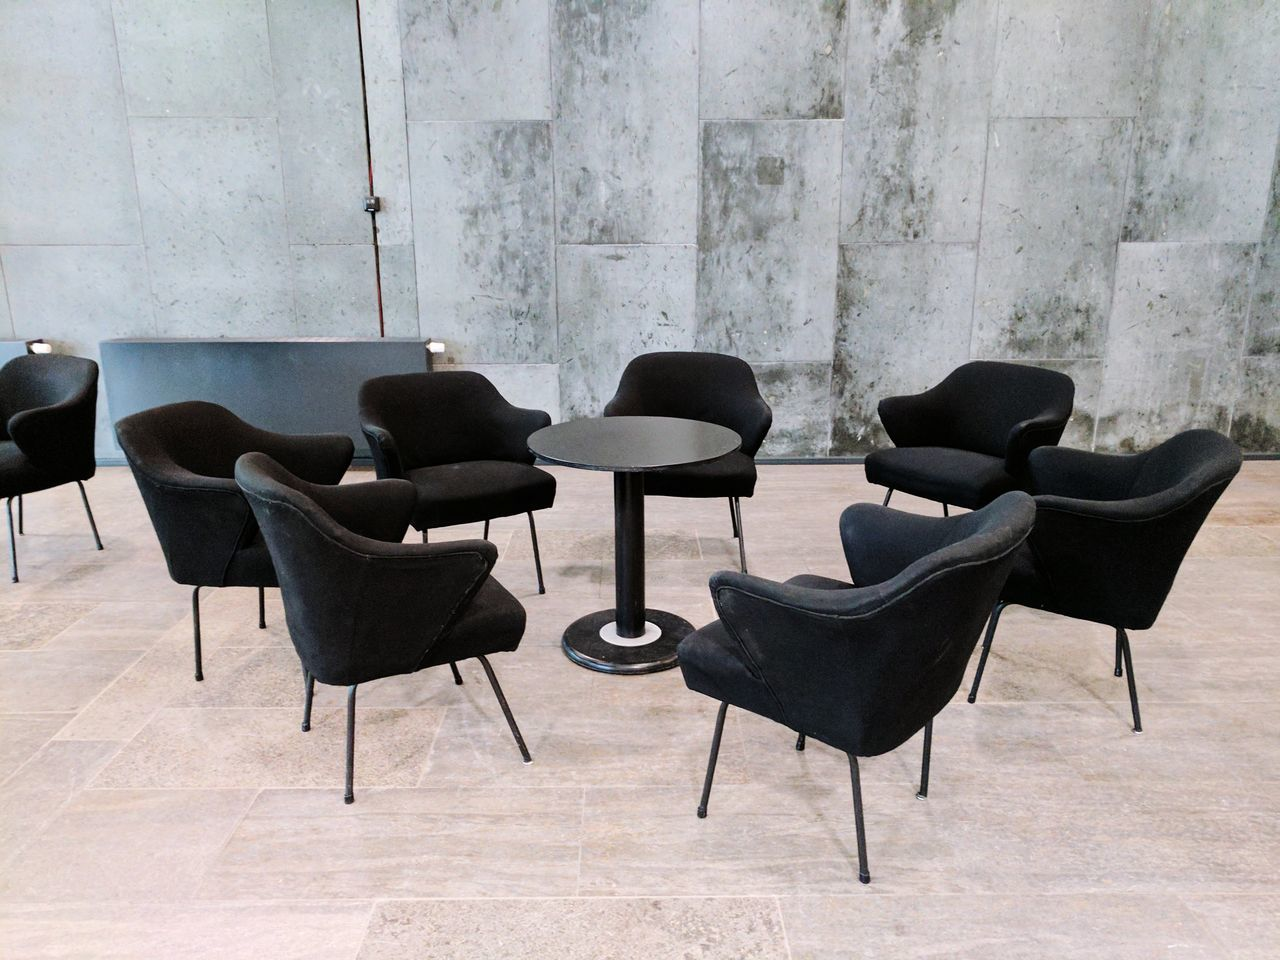 Chair Table Furniture Indoors  Black Color No People Office Chair Seat Day Communication